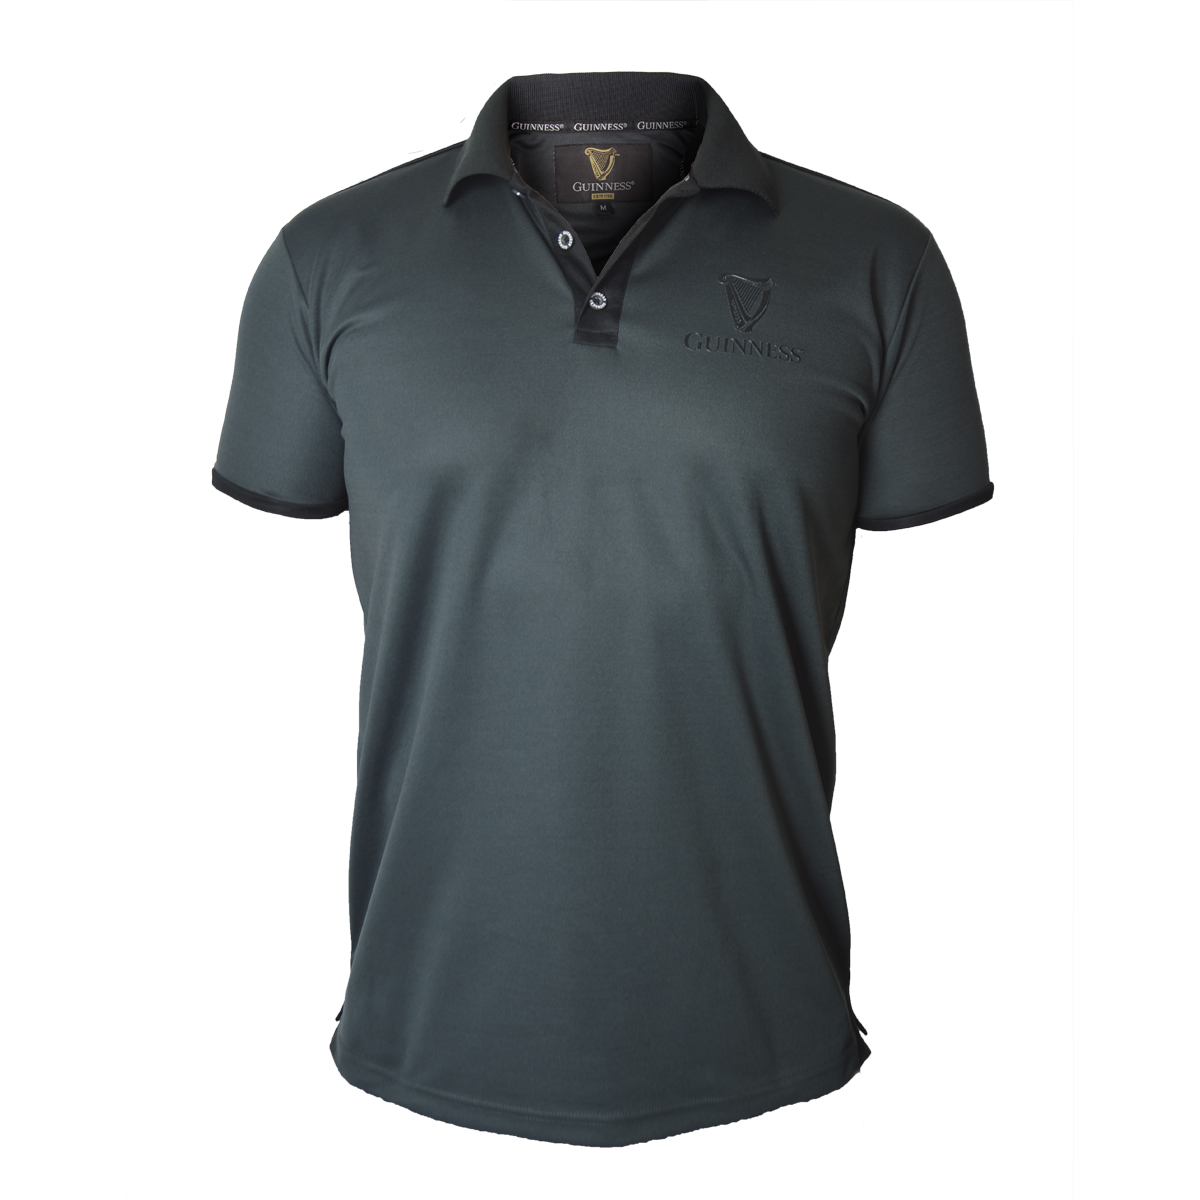 Irish Shirts | Guinness Black Harp Golf Shirt